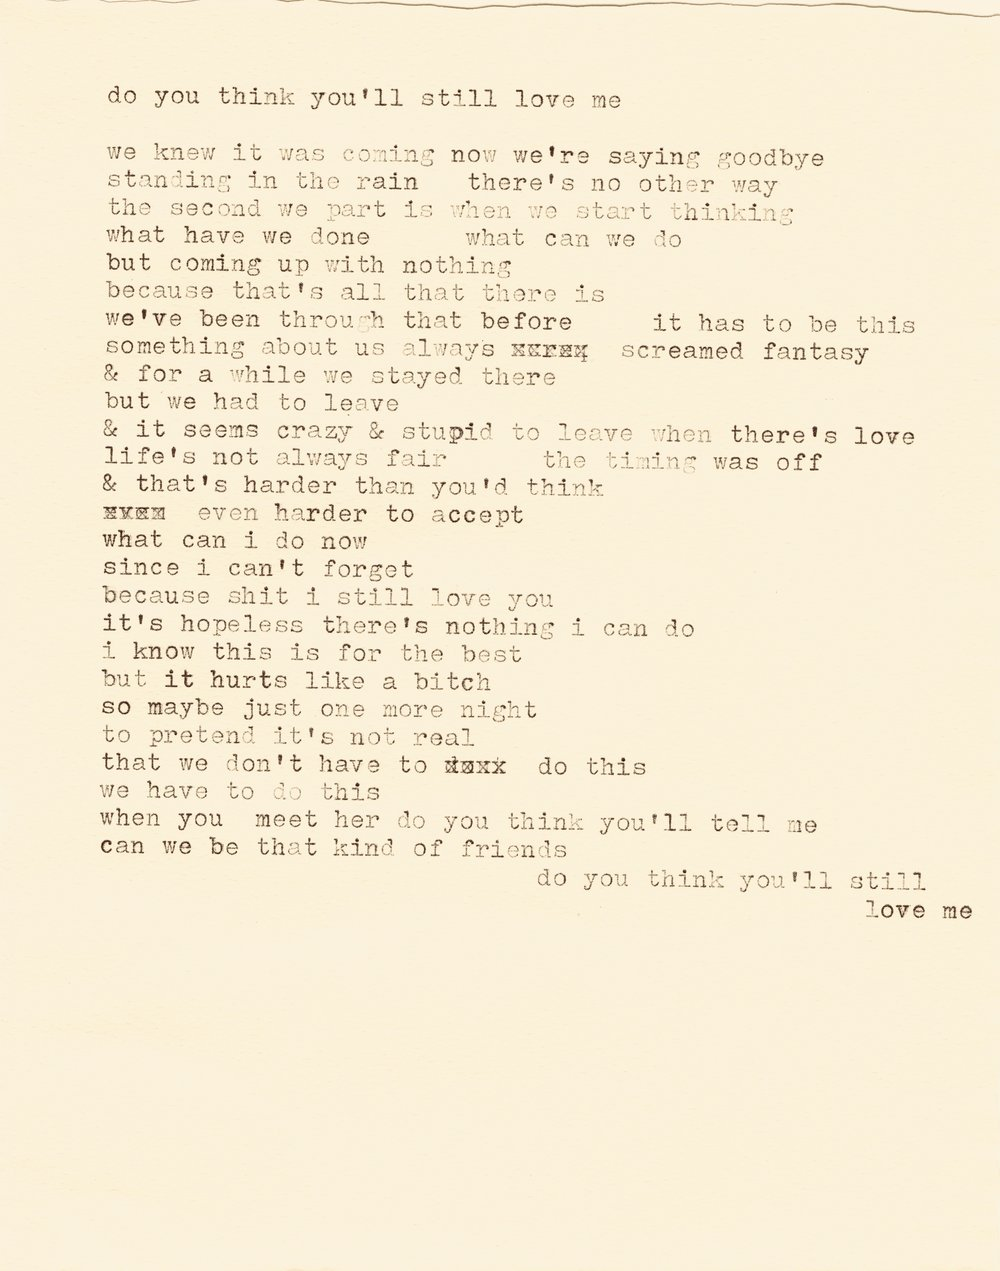 do you think you'll still love me lyrics typewriter.jpg